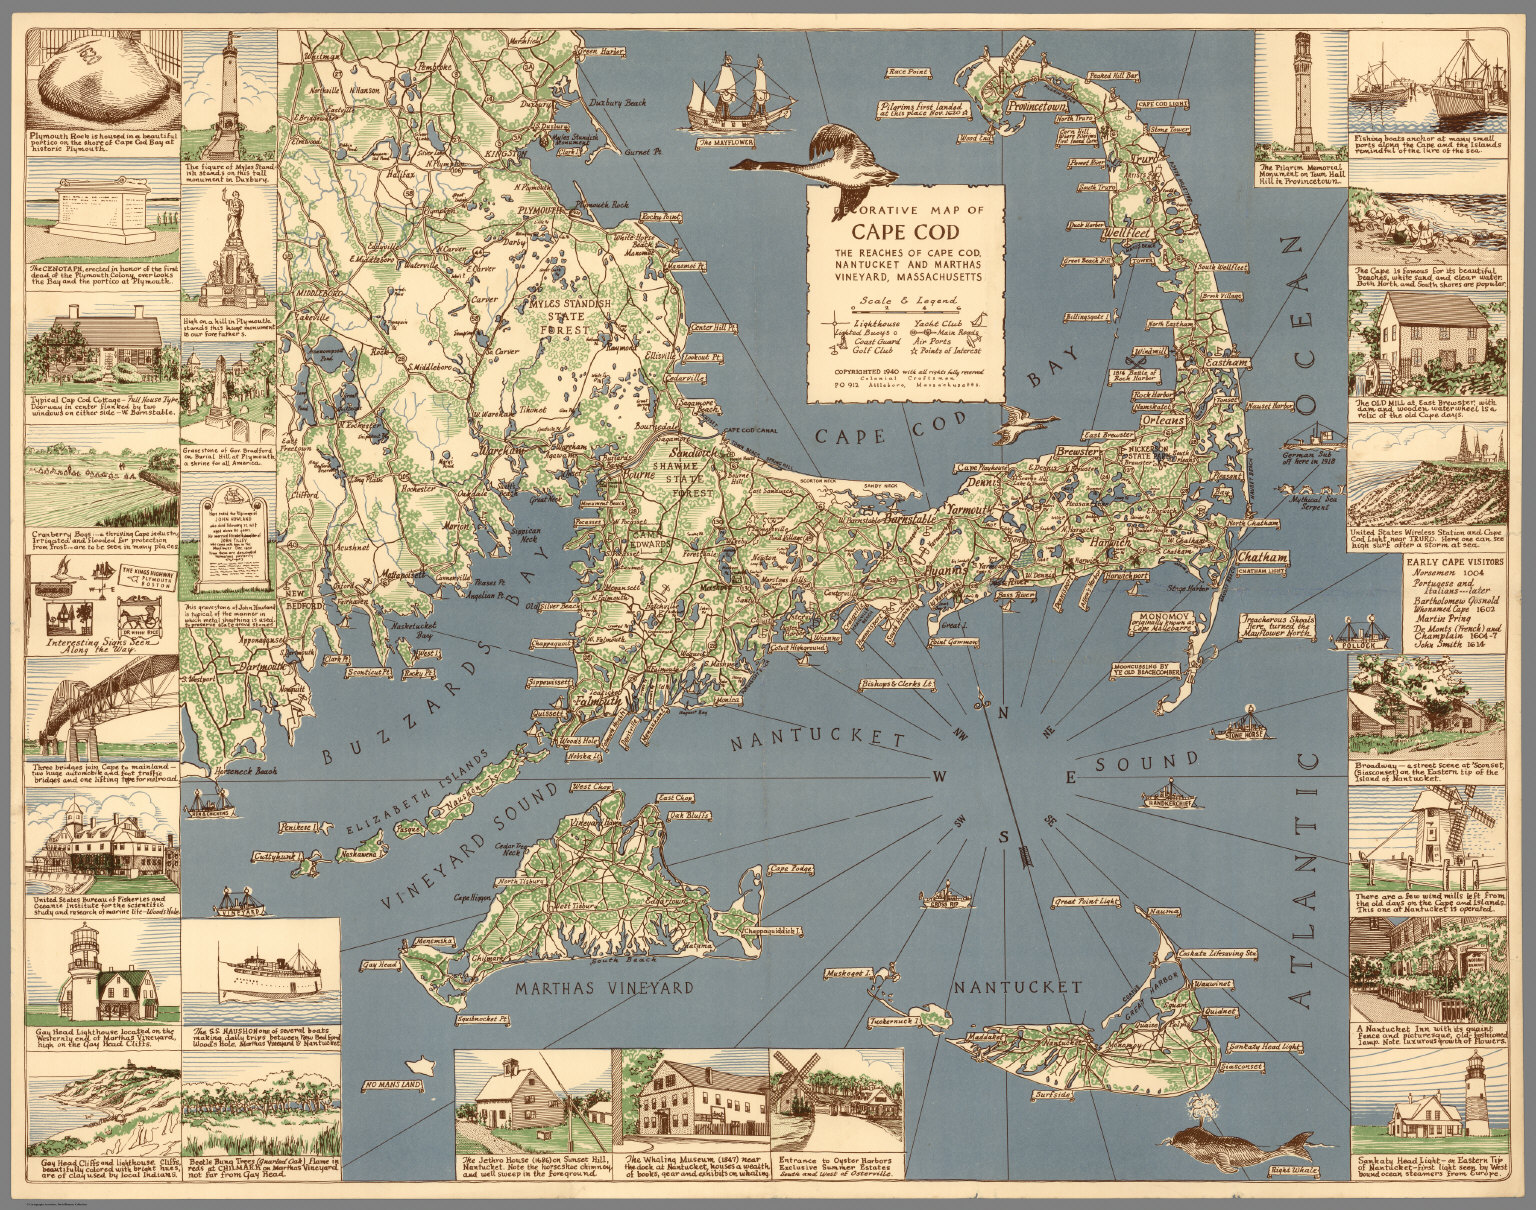 Decorative Map of Cape Cod. - David Rumsey Historical Map Collection